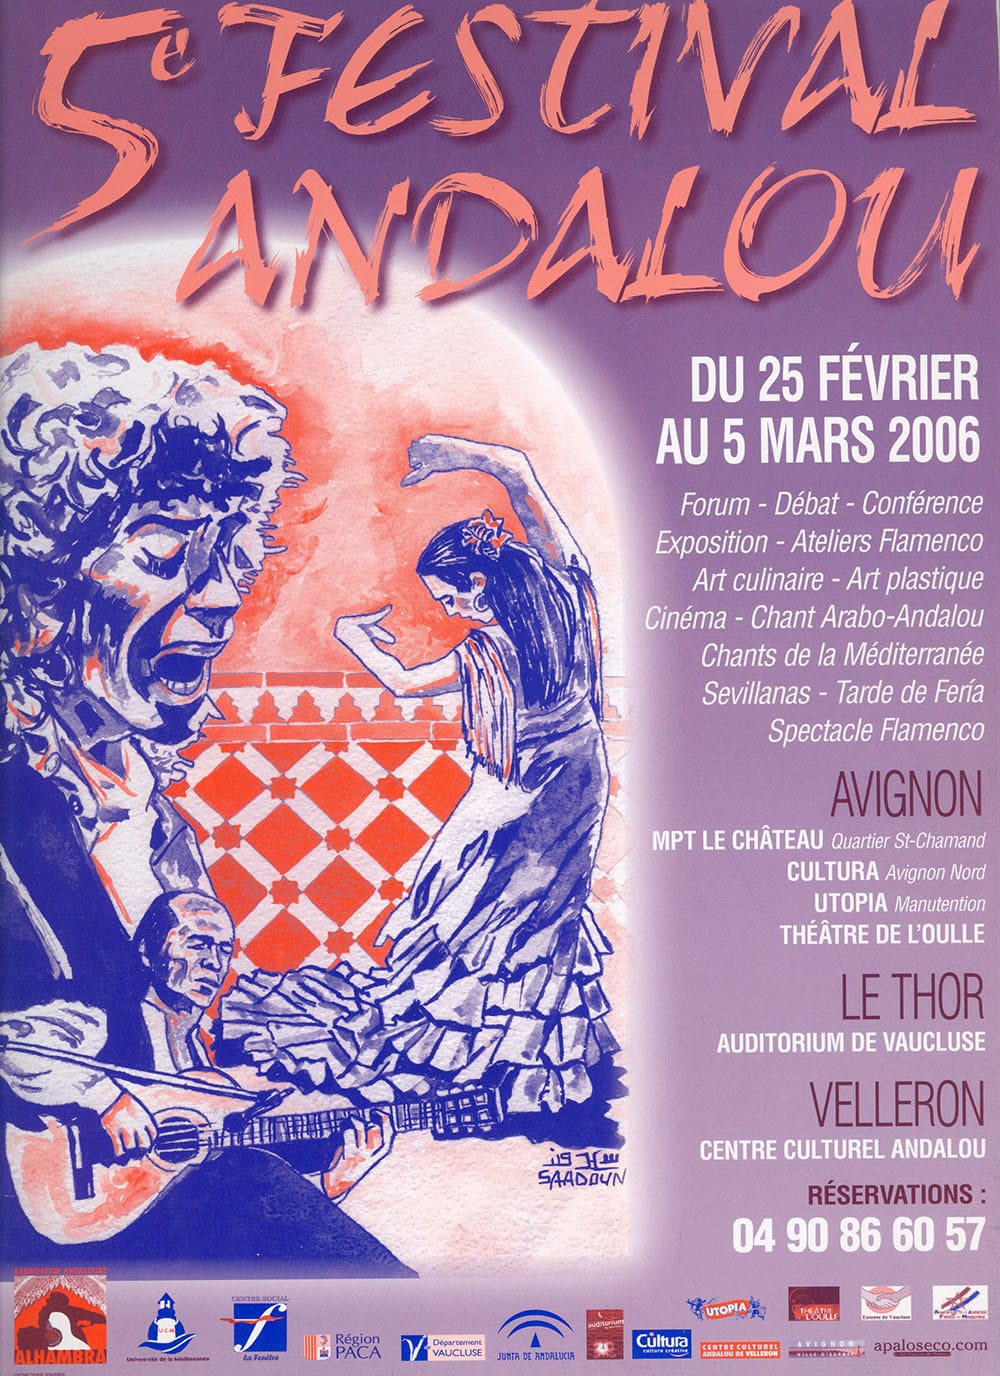 Festival Andalou - 5th edition